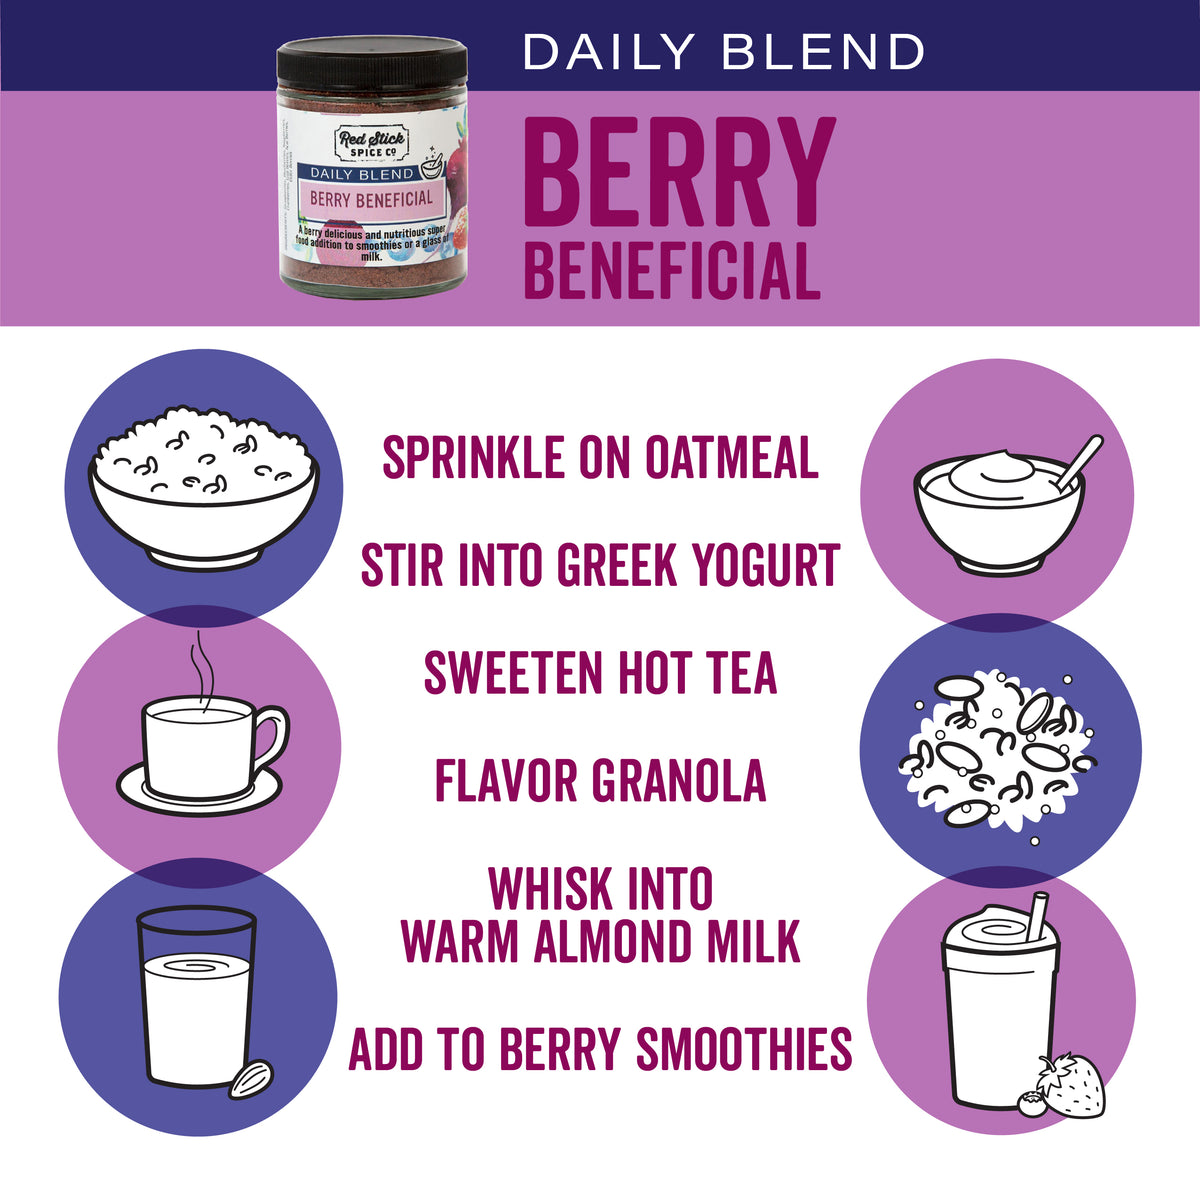 Berry Beneficial Daily Blend